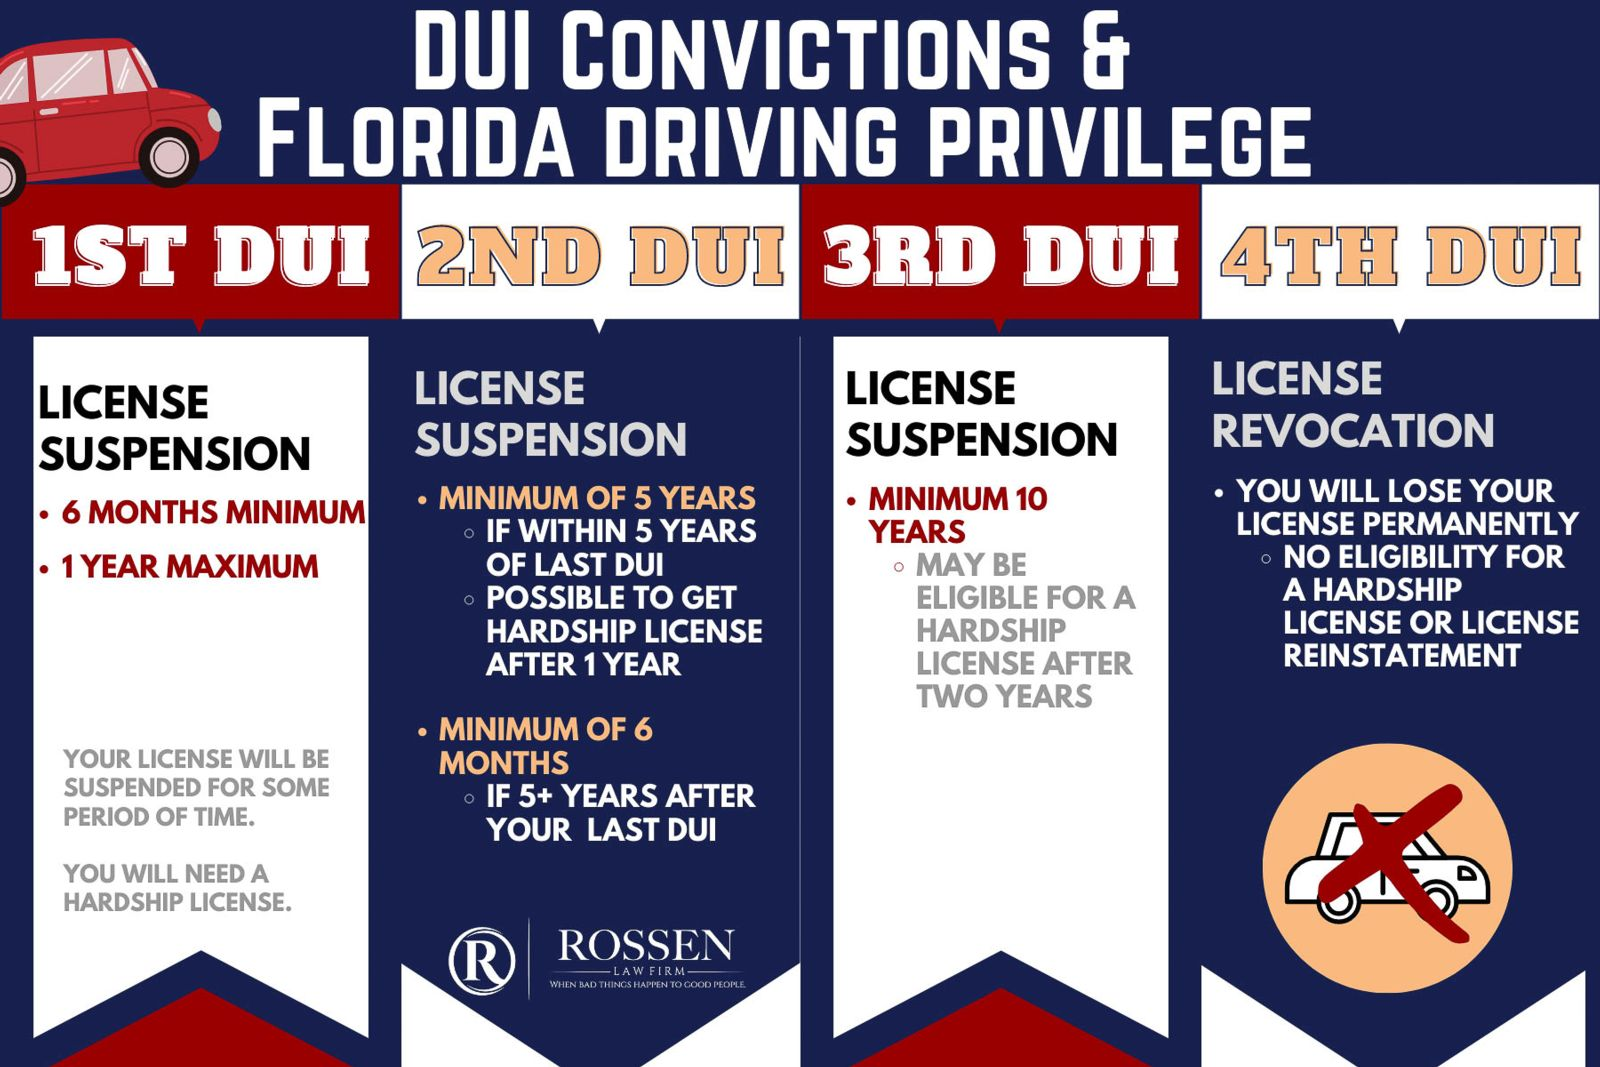 Florida DUI convictions and driving privileges